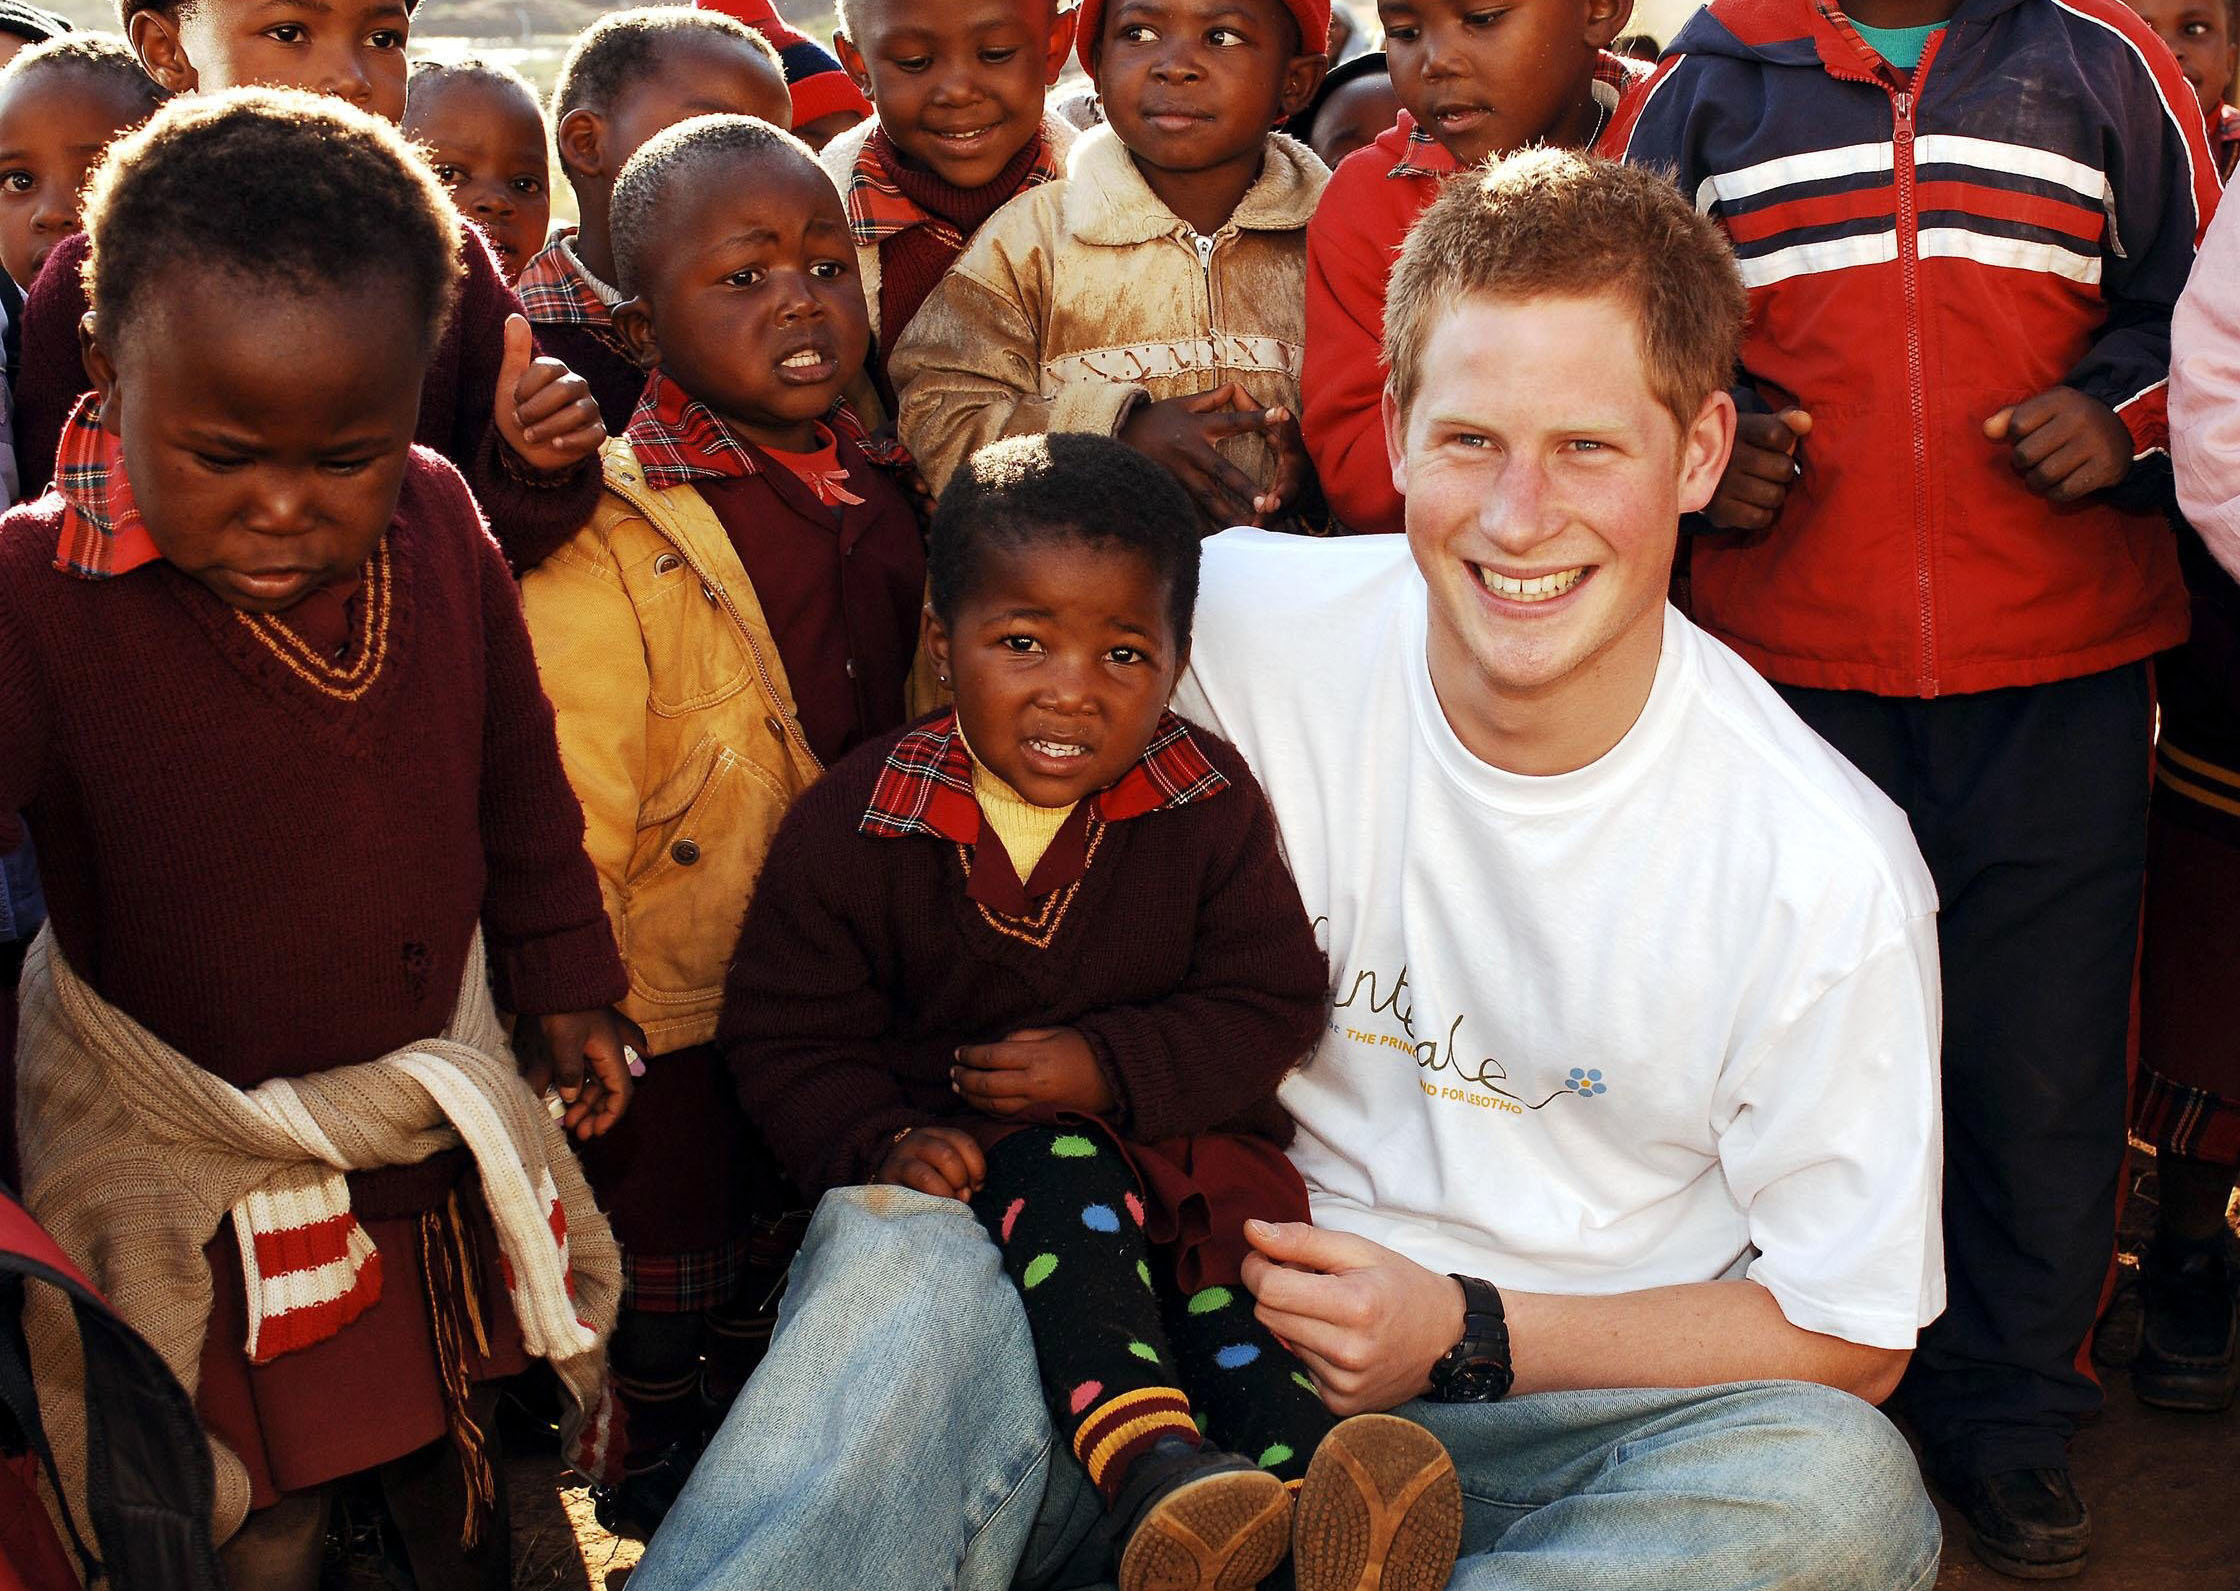 Prince Harry wears a shirt with the Sentebale logo as he holds a small girl while on visit to the Good Shepherd home, on a return visit to Lesotho. The Prince was in the country to launch his new charity called 'Sentebale', which means 'Forget me not', to benefit children orphaned by AIDS PRINCE HARRY IN LESOTHO TO LAUNCH A NEW CHARITY CALLED 'SENTEBALE', LESOTHO - 24 APR 2006, Image: 223734840, License: Rights-managed, Restrictions: NOT UK UNTIL 26 MAY 2006, Model Release: no, Credit line: REX / Shutterstock Editorial / Profimedia